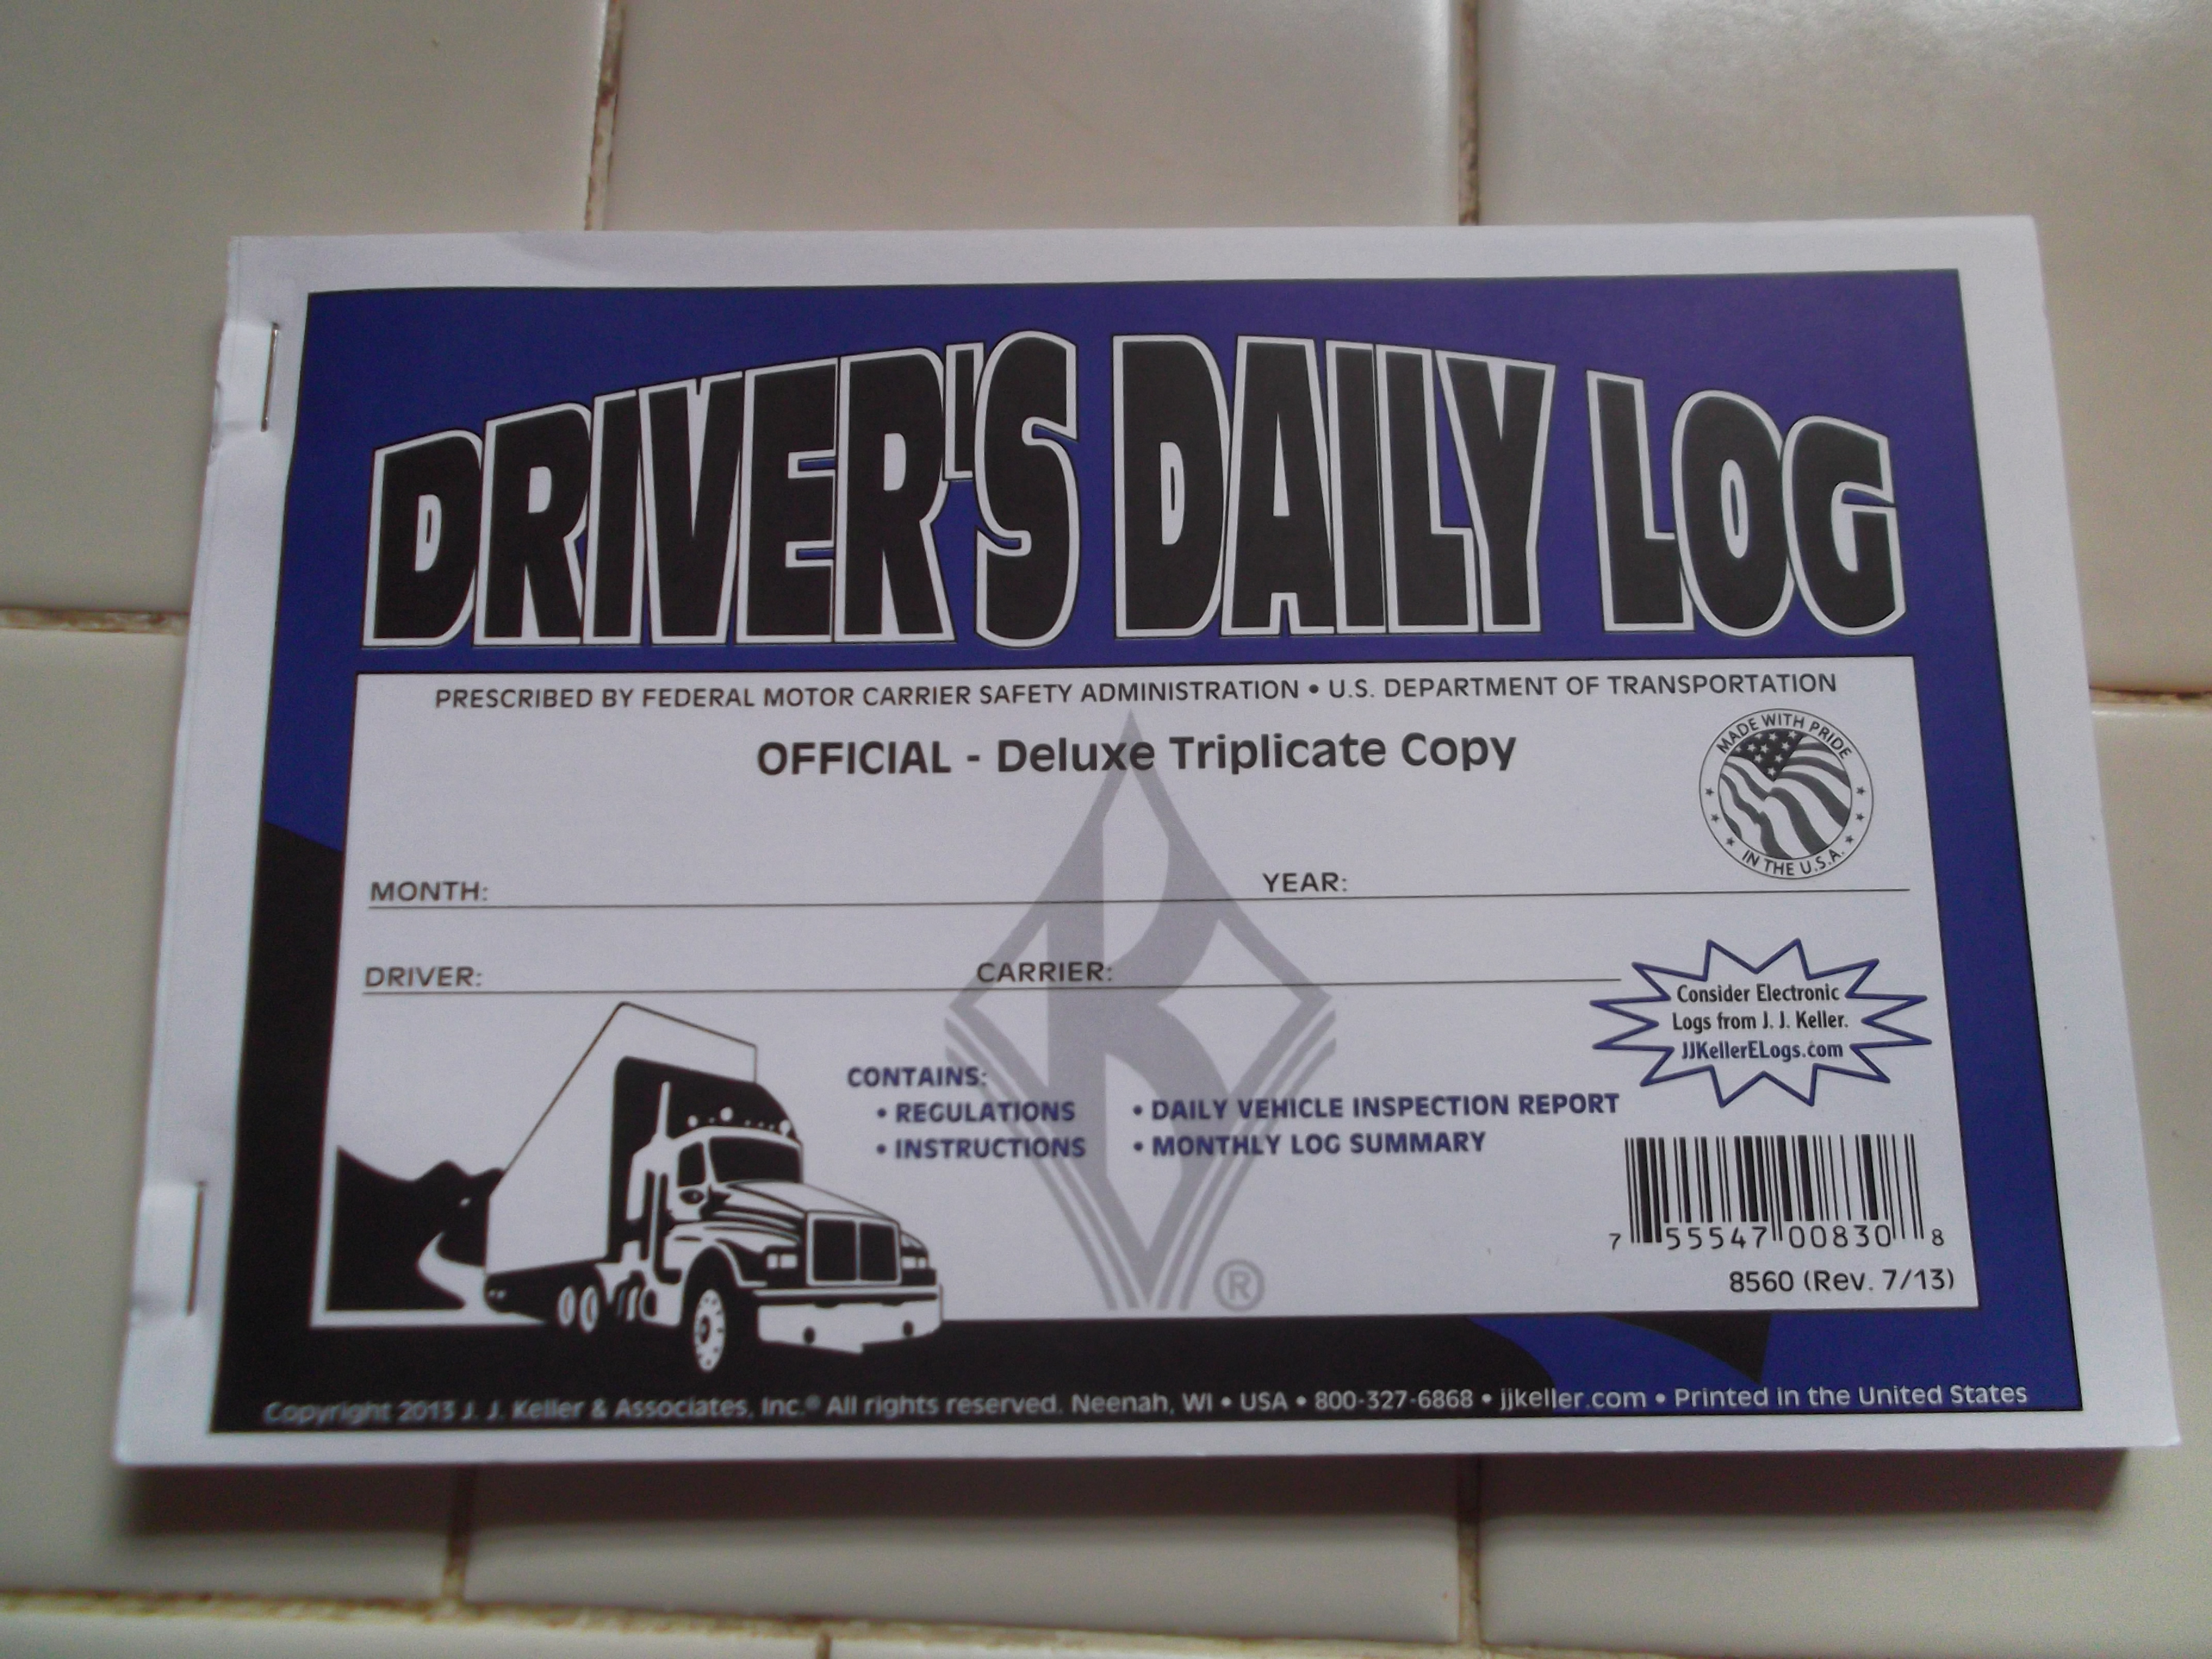 Truck drivers hours of service truck drivers are regulated by law to